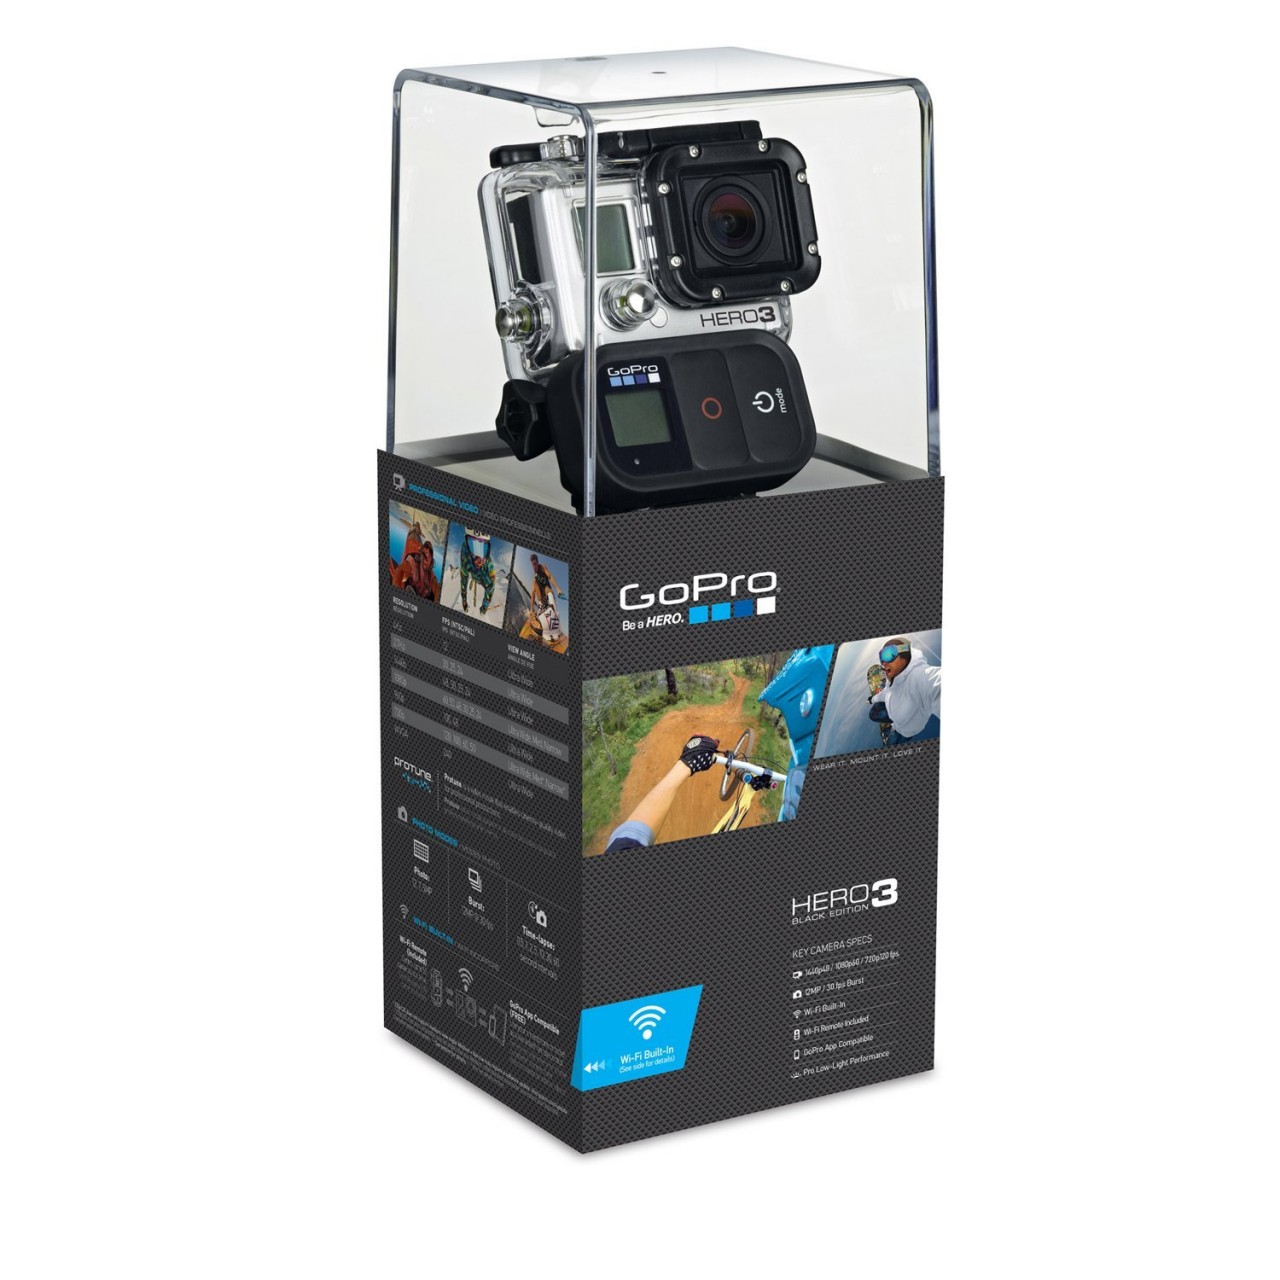 GoPro HERO3 Black Edition in Pakistan Supports 4K,, 1080p